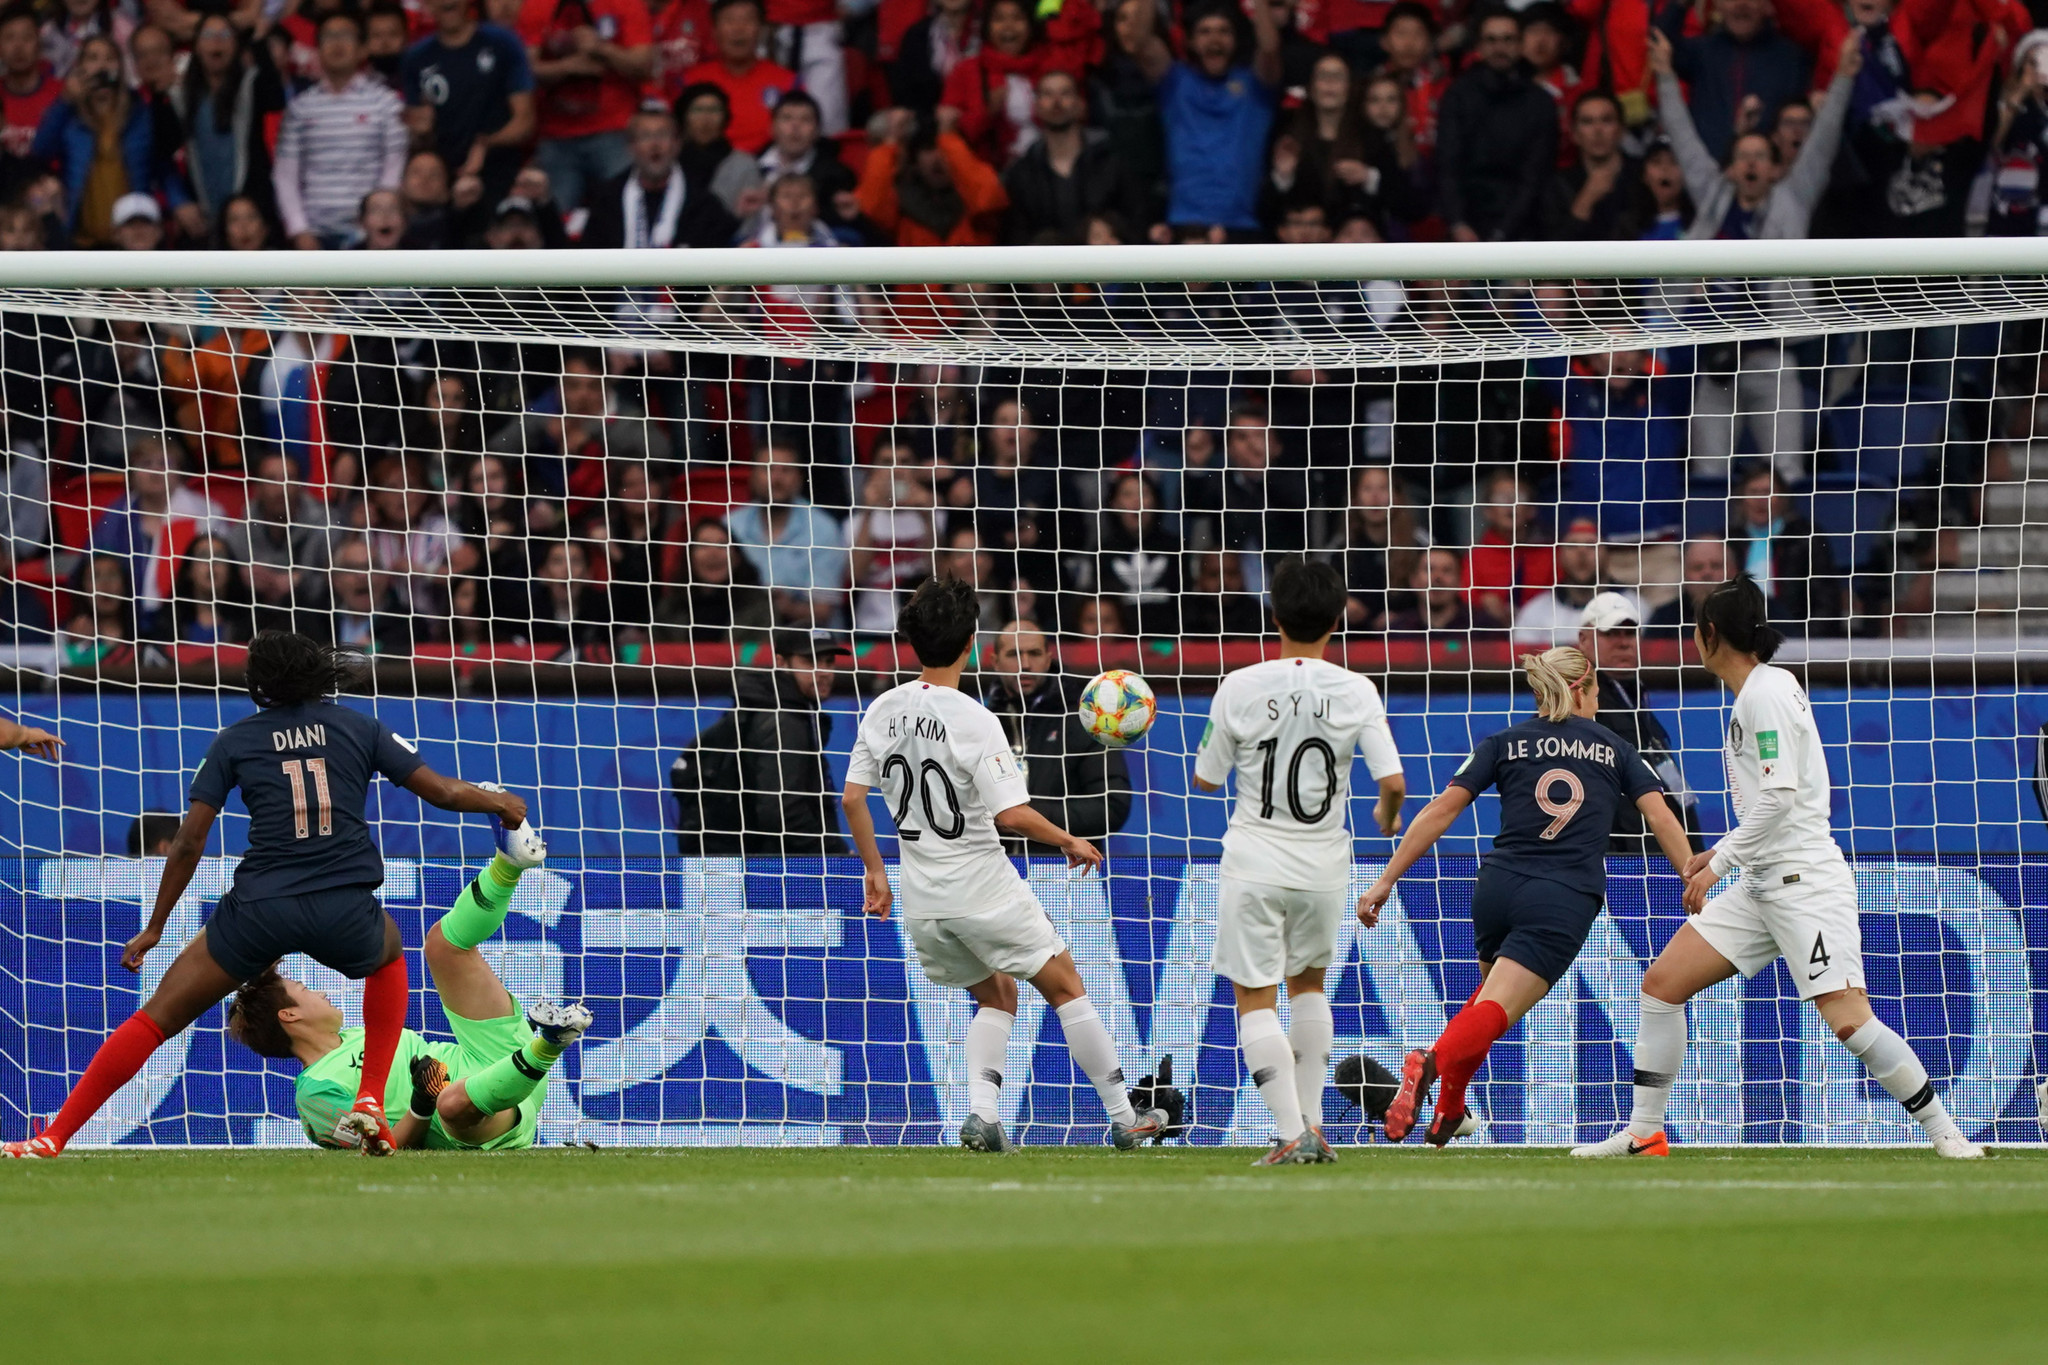 Eugénie Le Sommer capitalised on this for her country, scoring the tournament's first goal in the ninth minute ©Getty Images